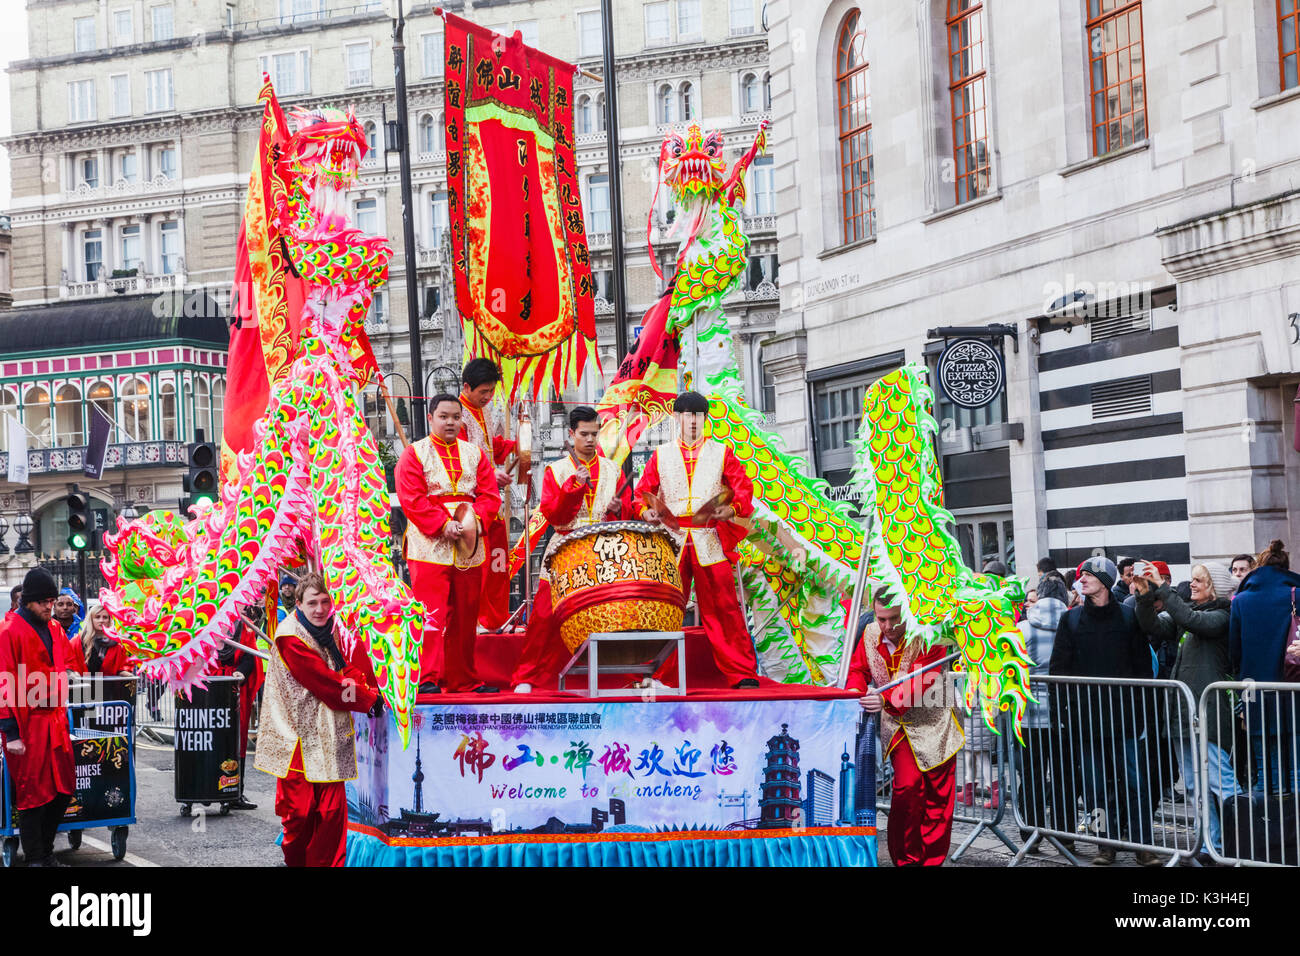 England, London, Chinatown, Chinese New Year Parade, Festival Float and Spectators - Stock Image